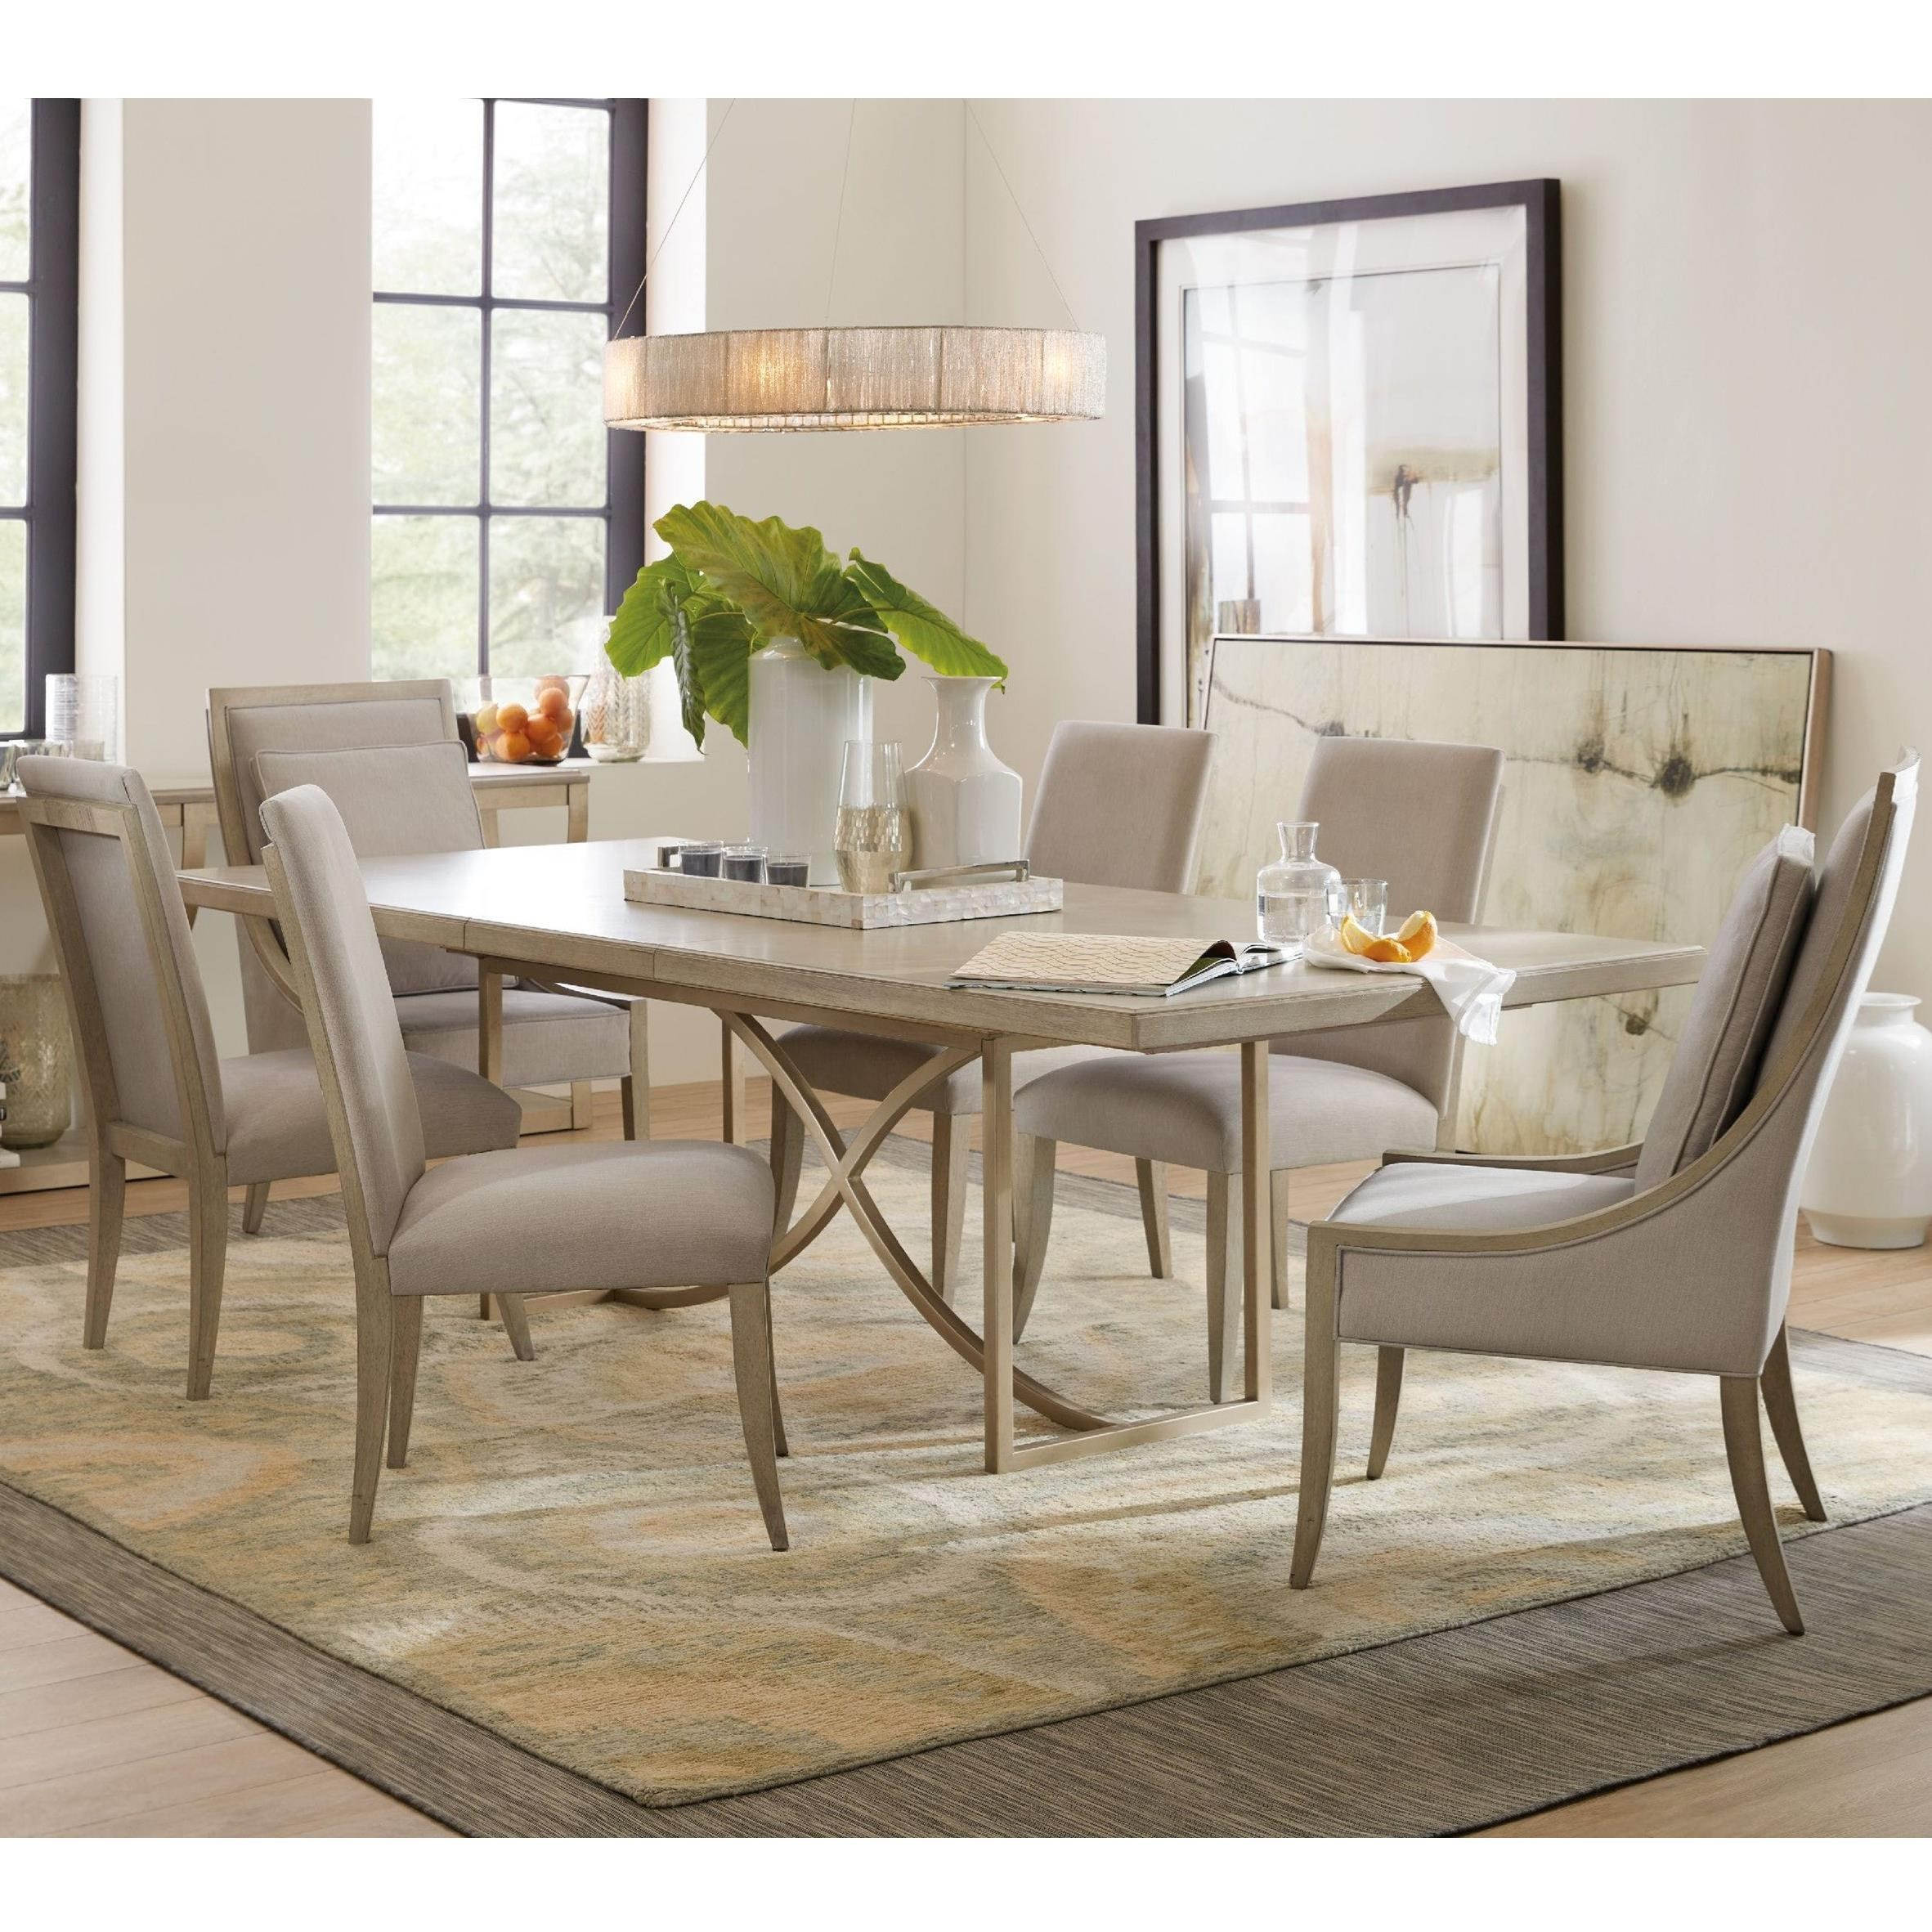 Hooker Furniture Elixir7 Piece Dining Set ...  sc 1 st  Belfort Furniture & Hooker Furniture Elixir 7 Piece Dining Set with Host Chairs ...